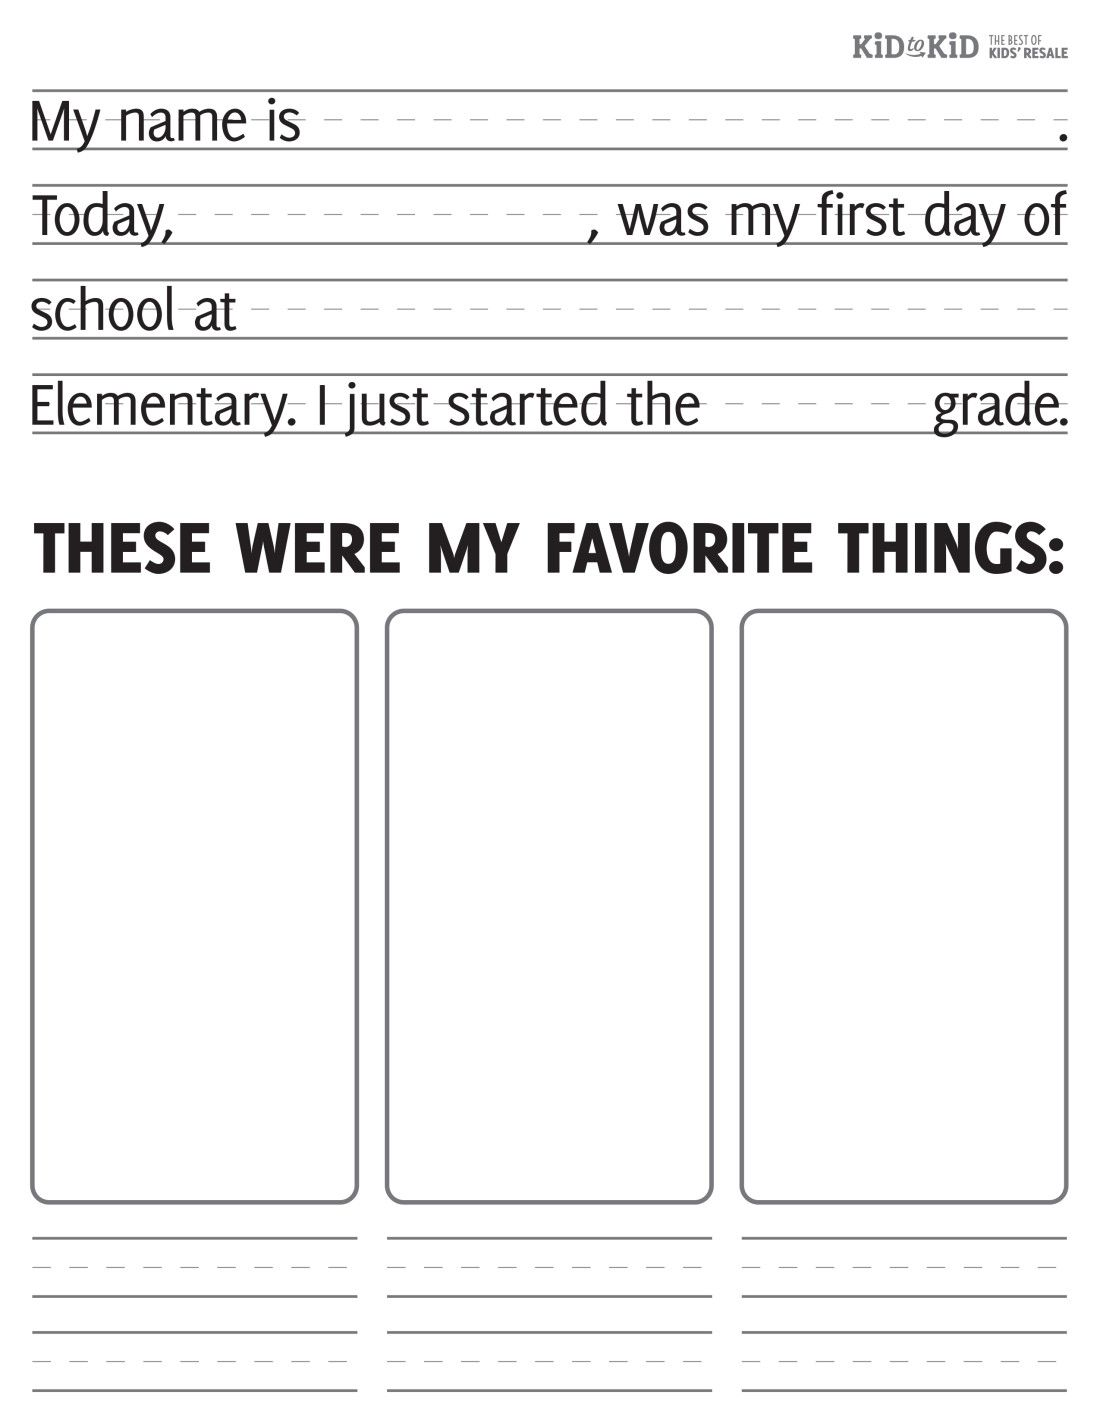 Pin On Kids Printables Charts Activites Planning Pages Ect